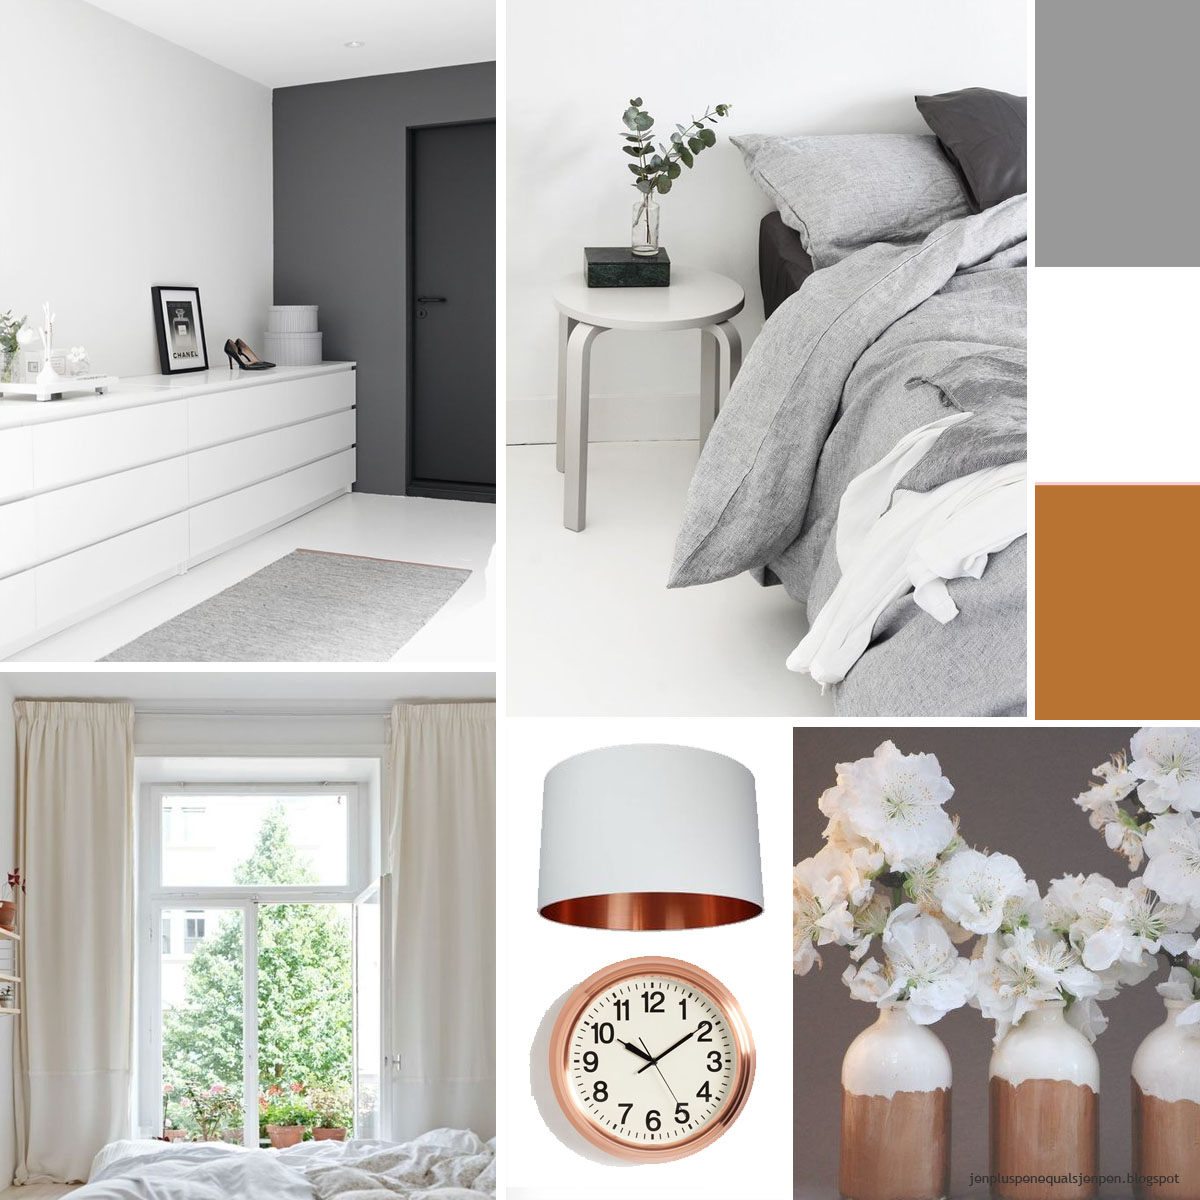 Assignments 11 & 12 : Design your office & bedroom space - JenPEN ...